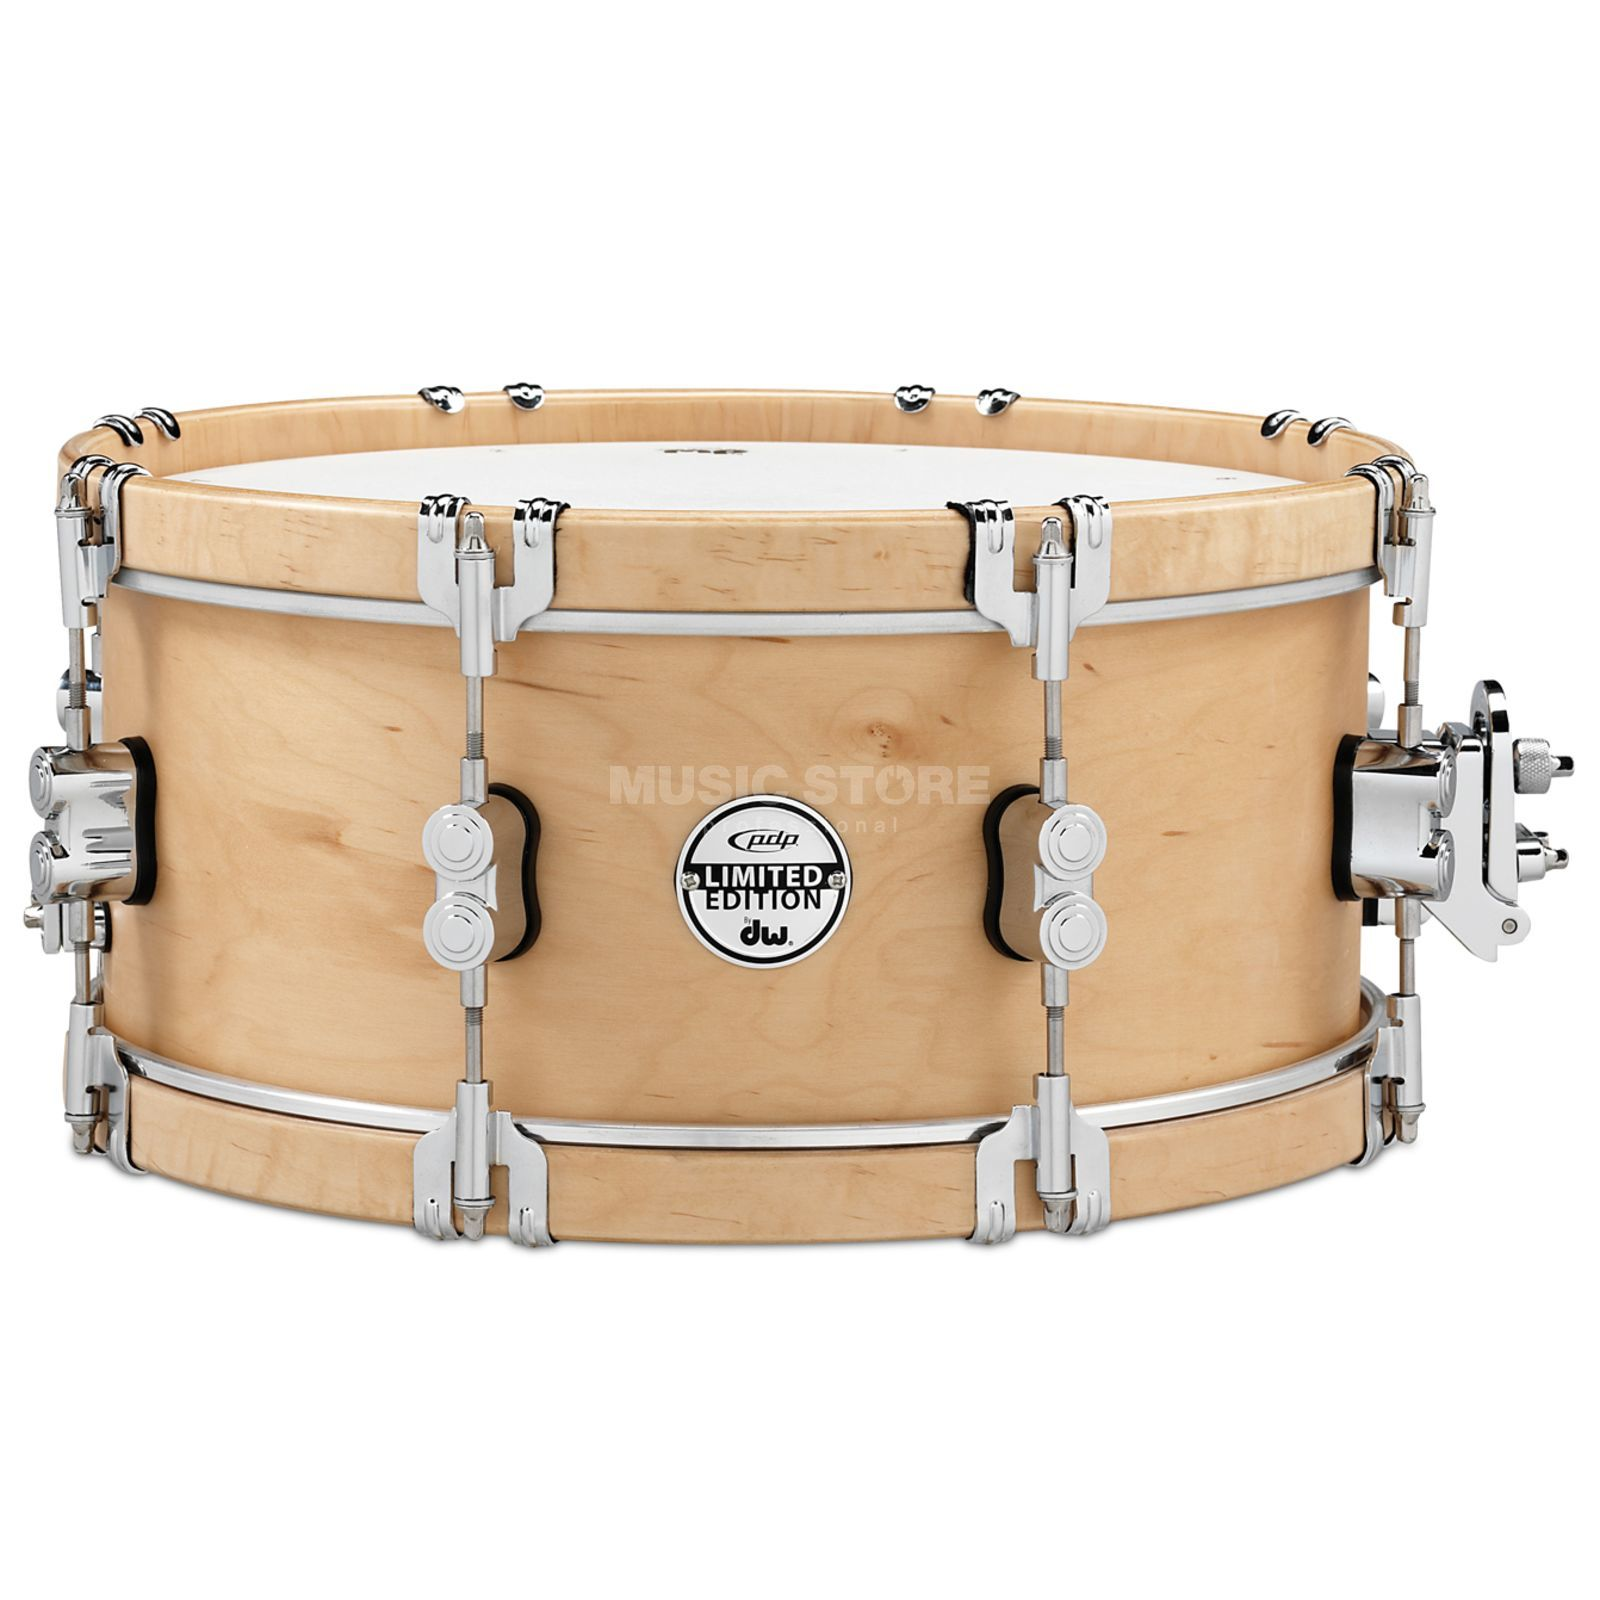 "Drum Workshop PDP LTD Classic Snare 14""x6"", Wood Hoop Produktbild"